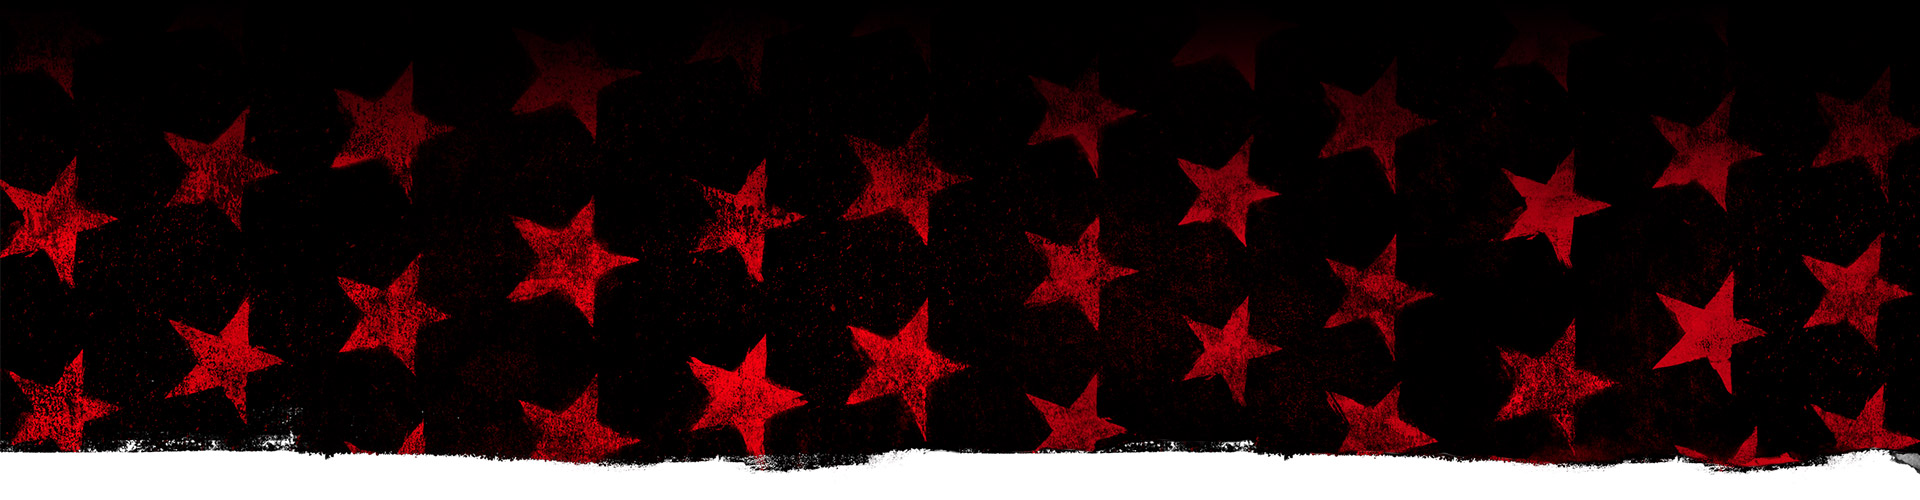 Red stars against a black background.